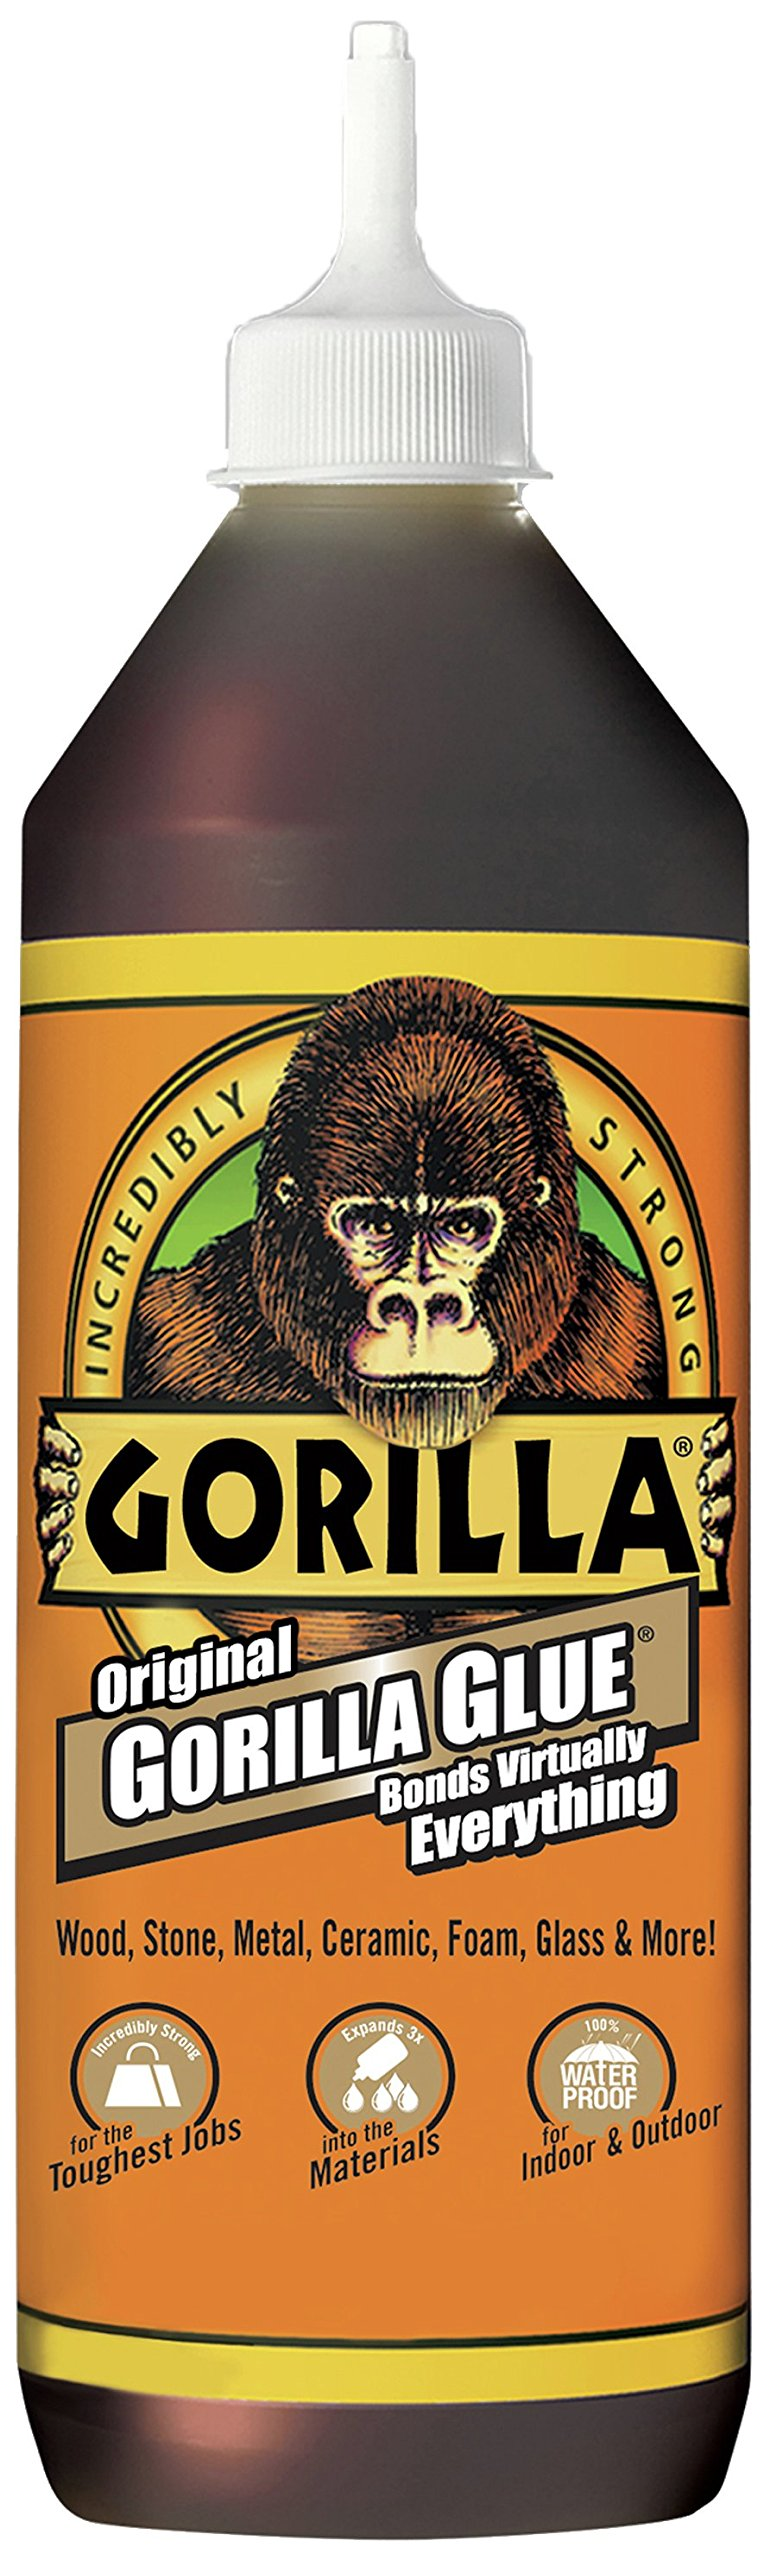 Gorilla Original Gorilla Glue, 36 oz, Brown